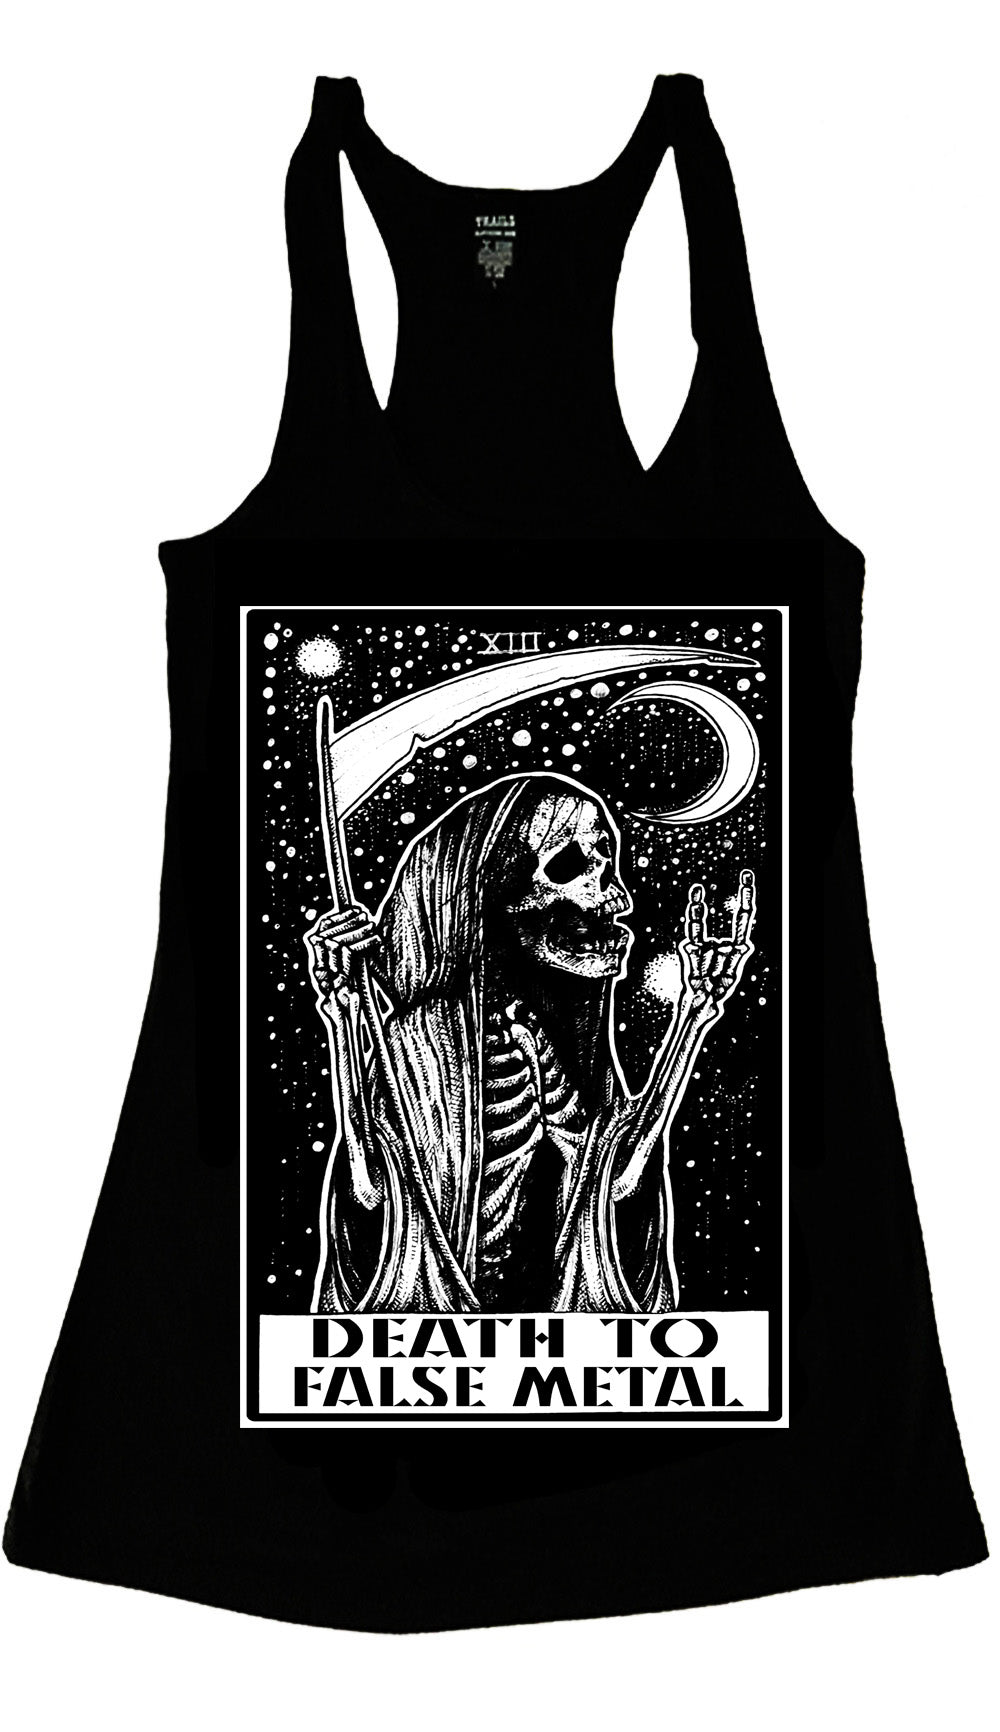 GRIM REAPER DEATH TO FALSE METAL TANK TOP - Trailsclothing.com